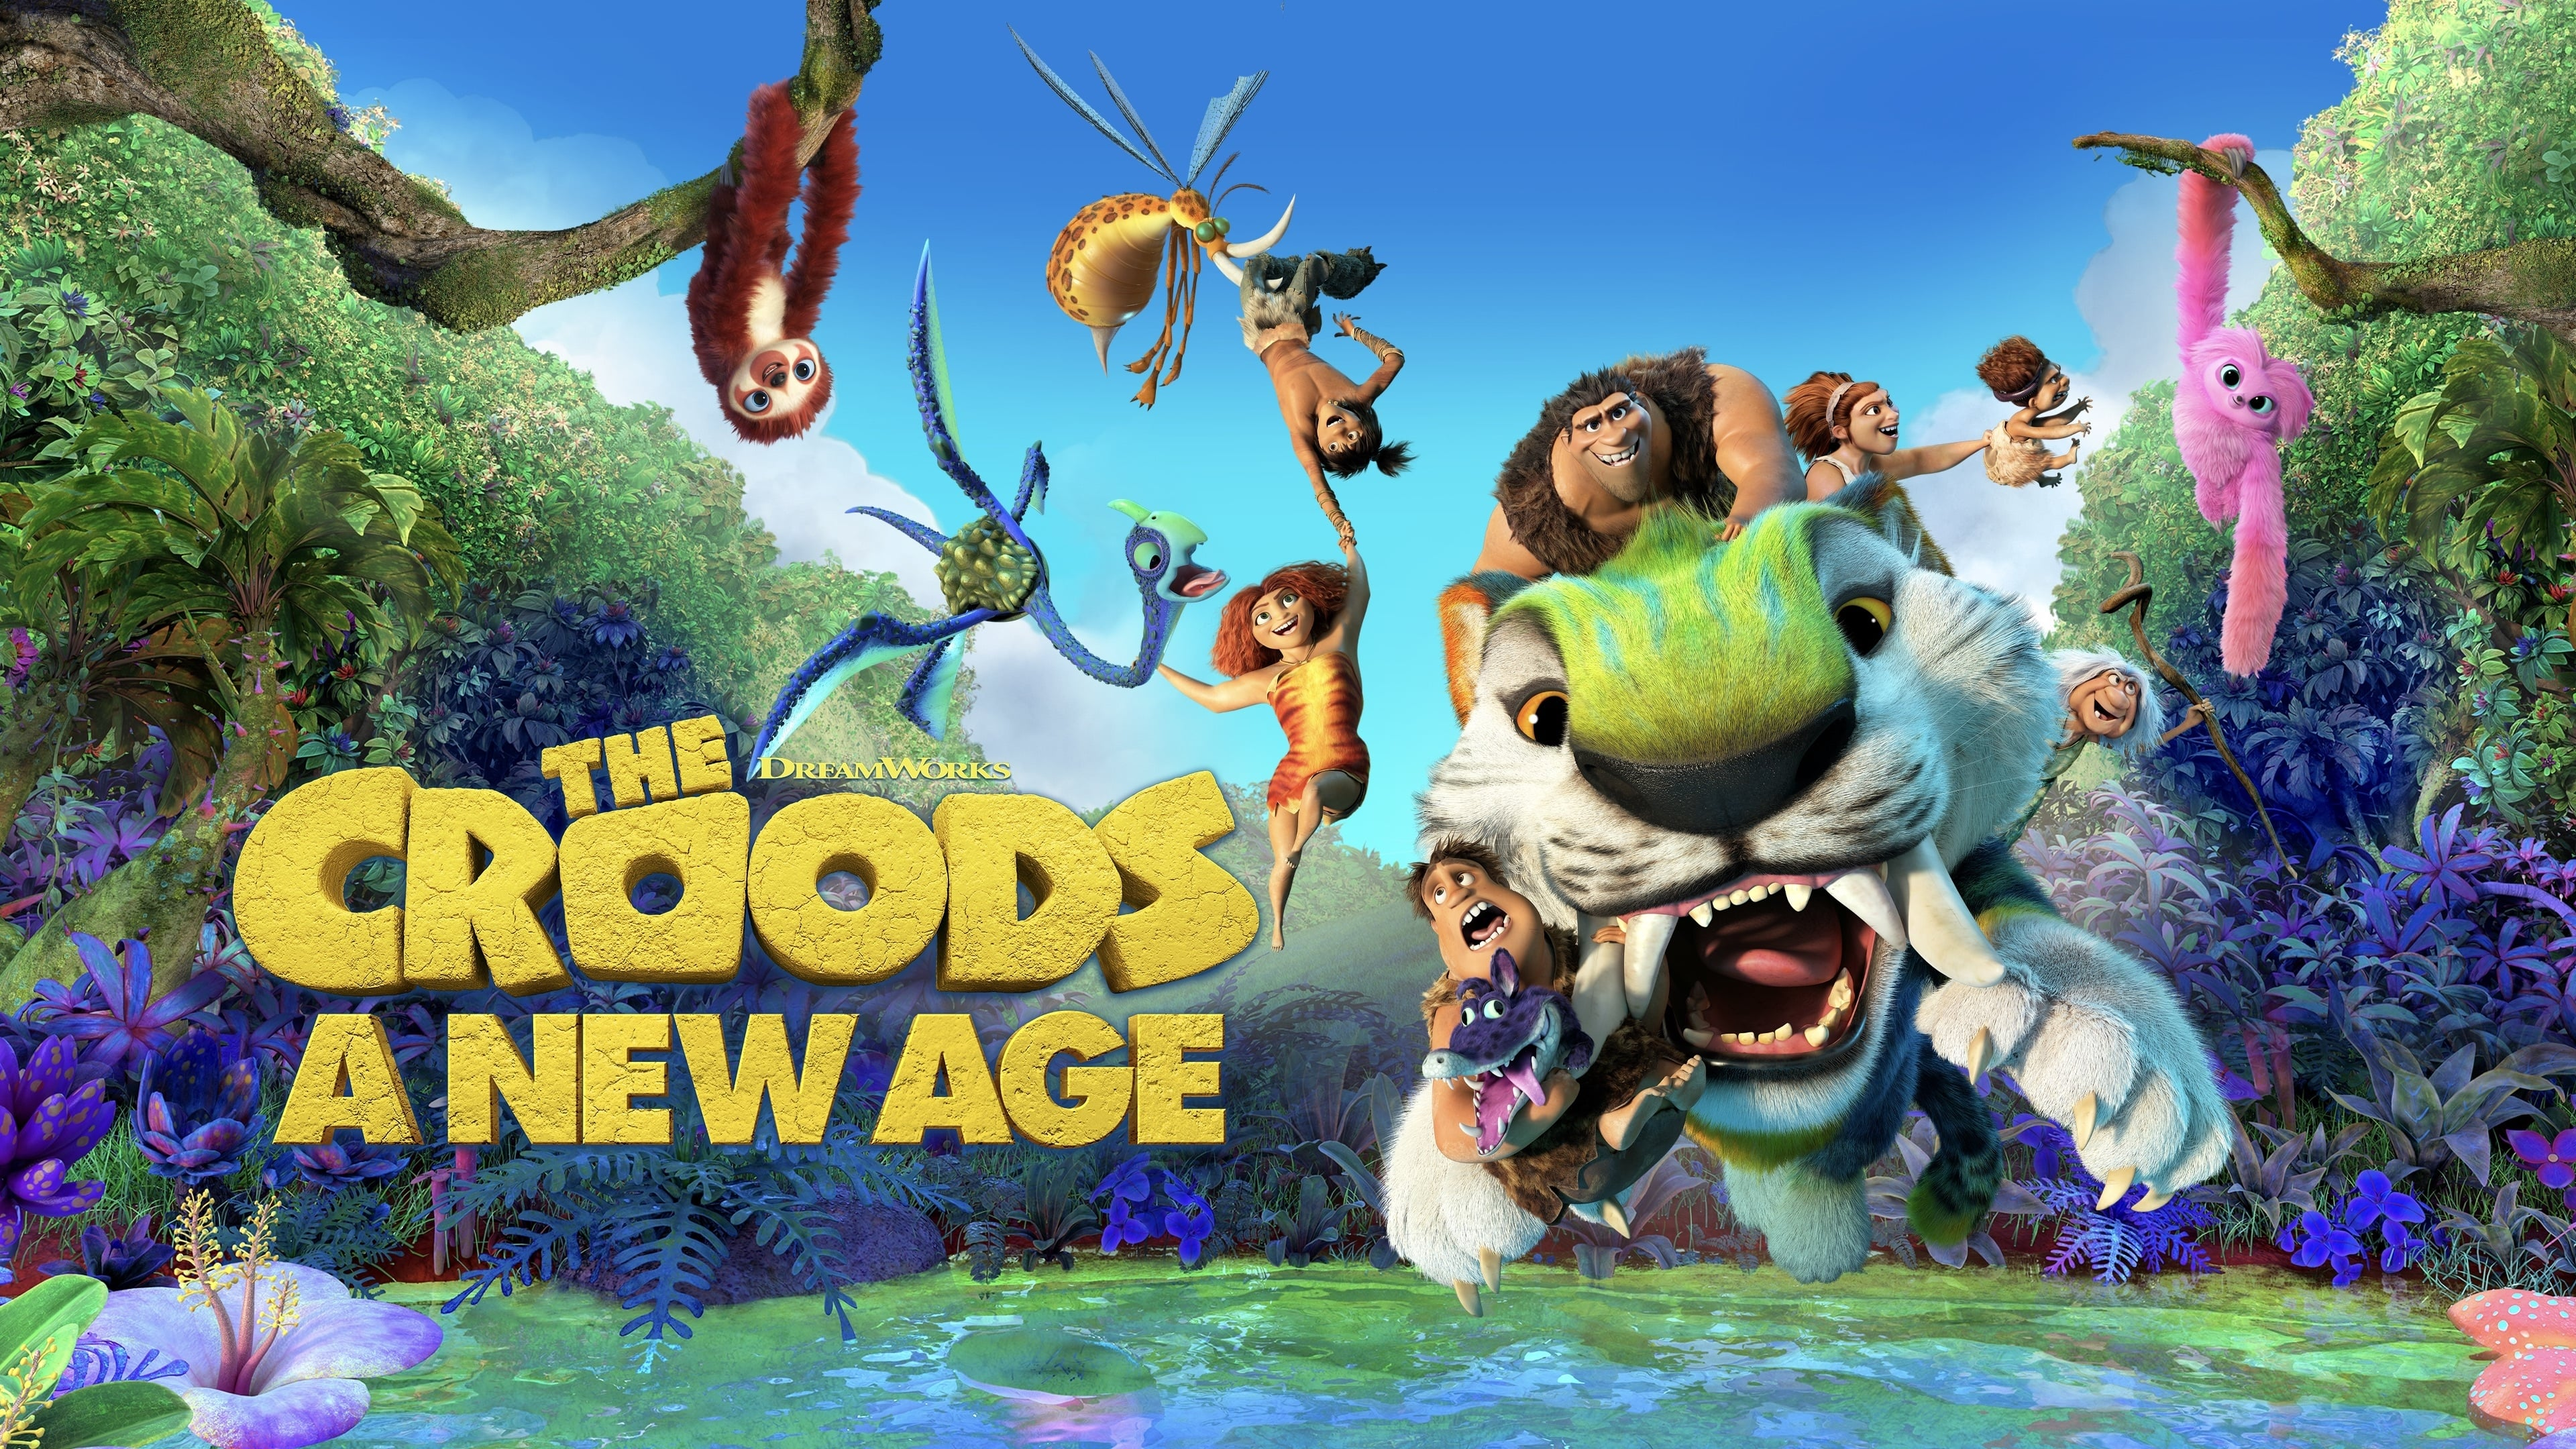 The Croods: A New Age (2020)